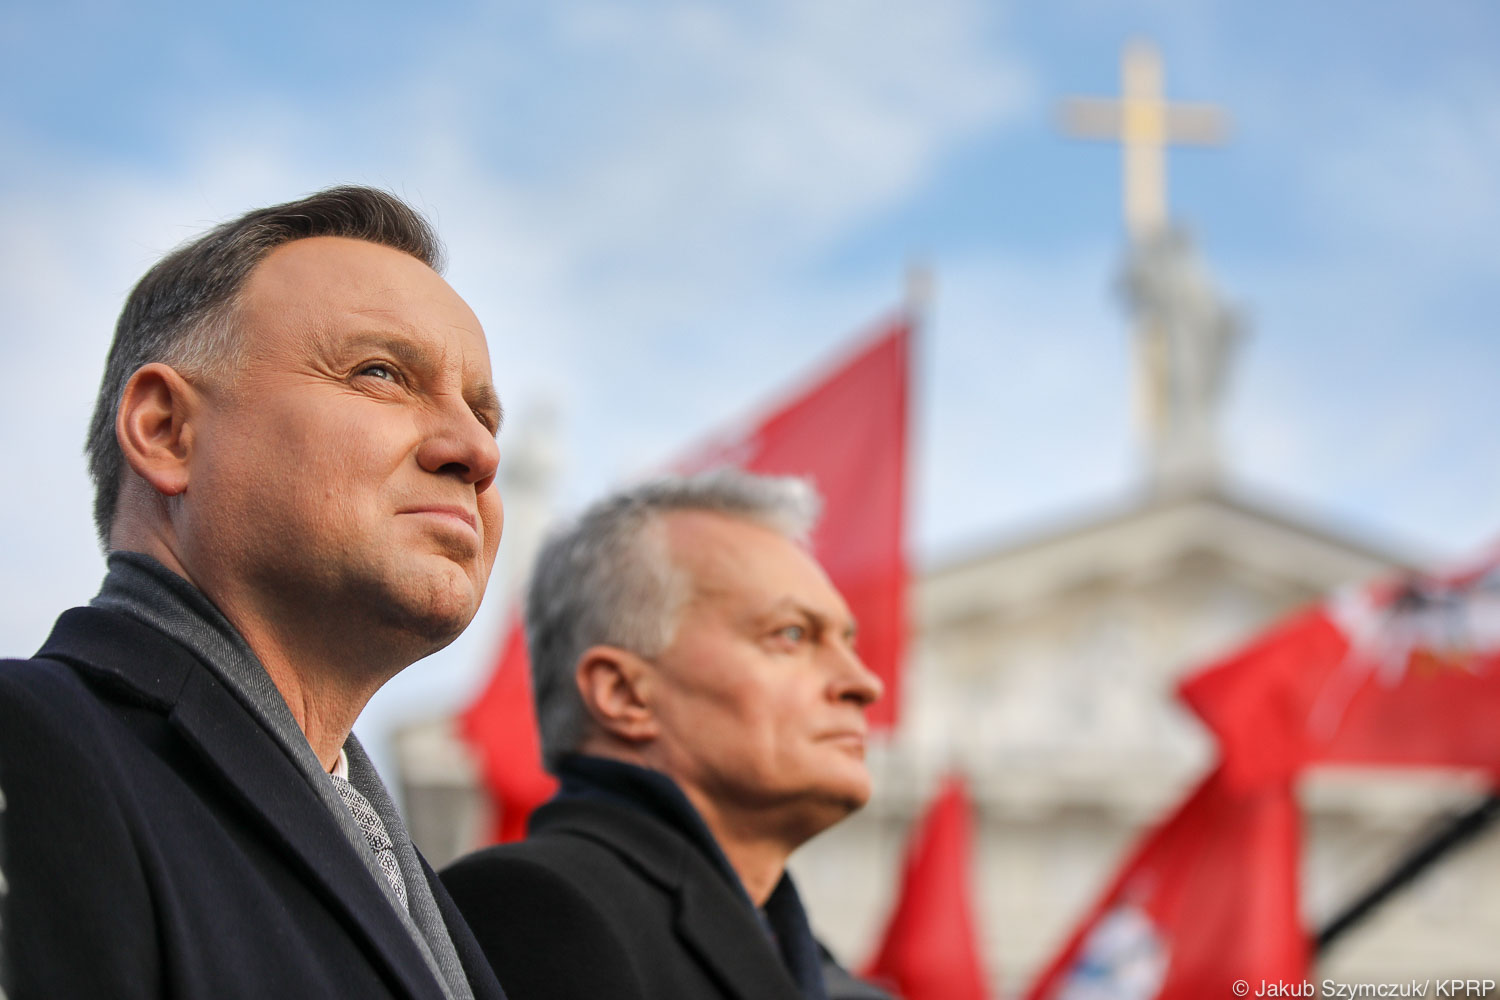 WI Daily News – Presidents of Poland, Lithuania and Romania call on EU to enlarge aid package for Belarus